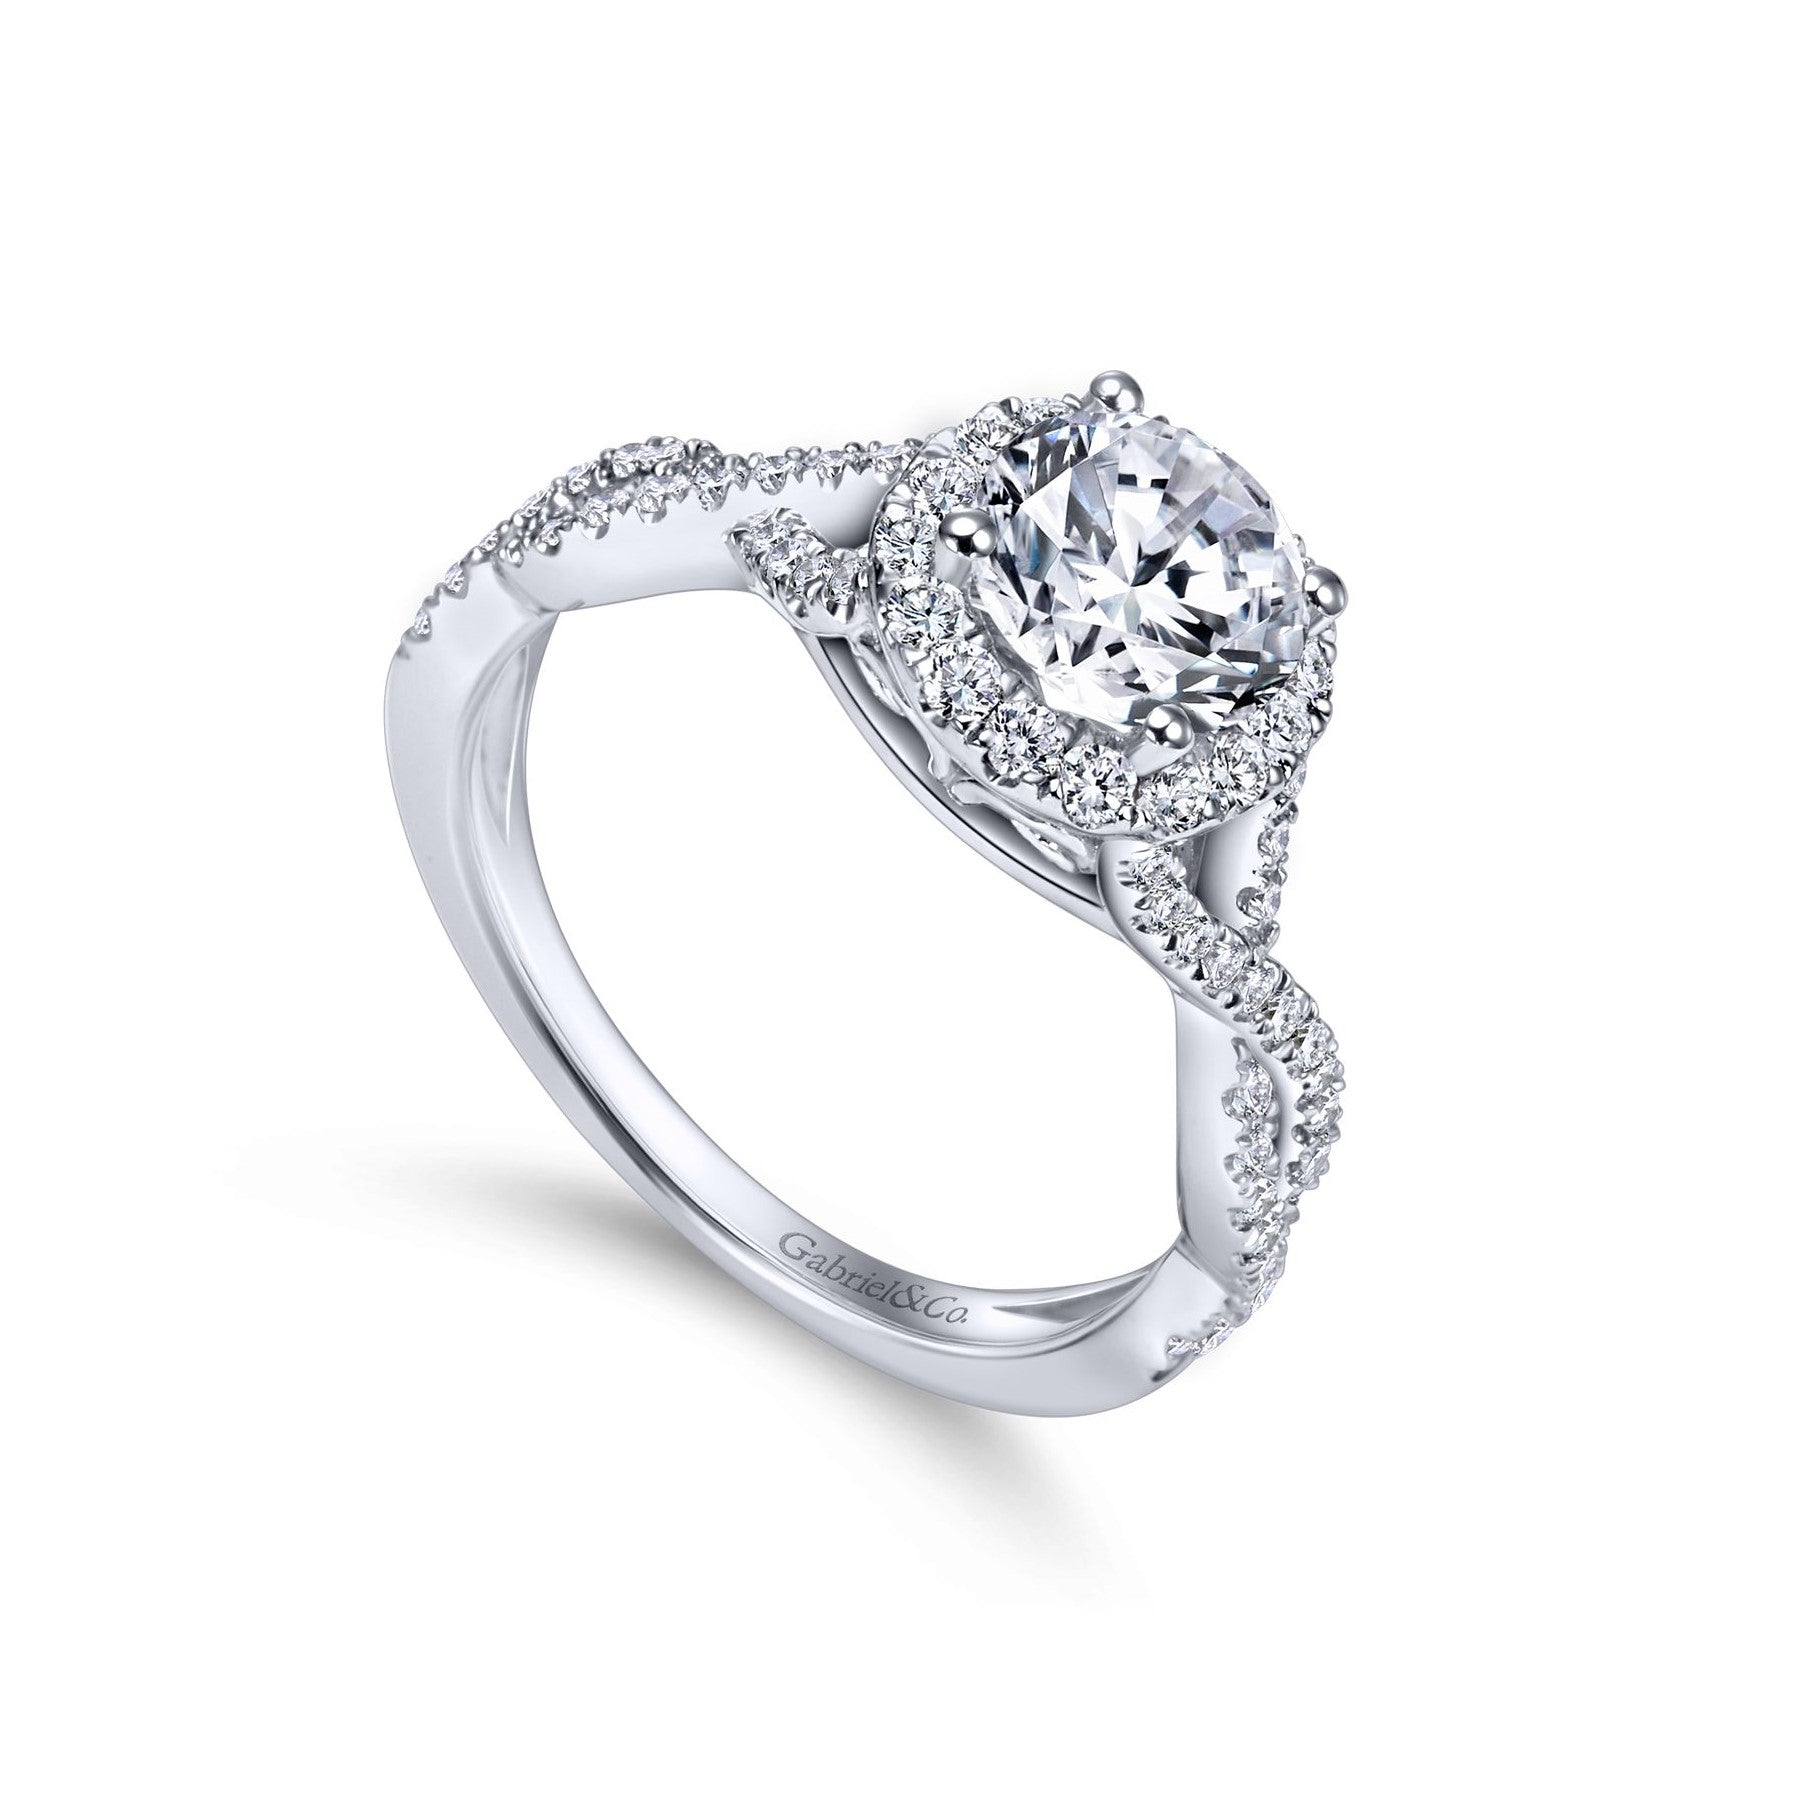 Gabriel & Co. 14K White Gold Twisted Diamond Halo Engagement Ring